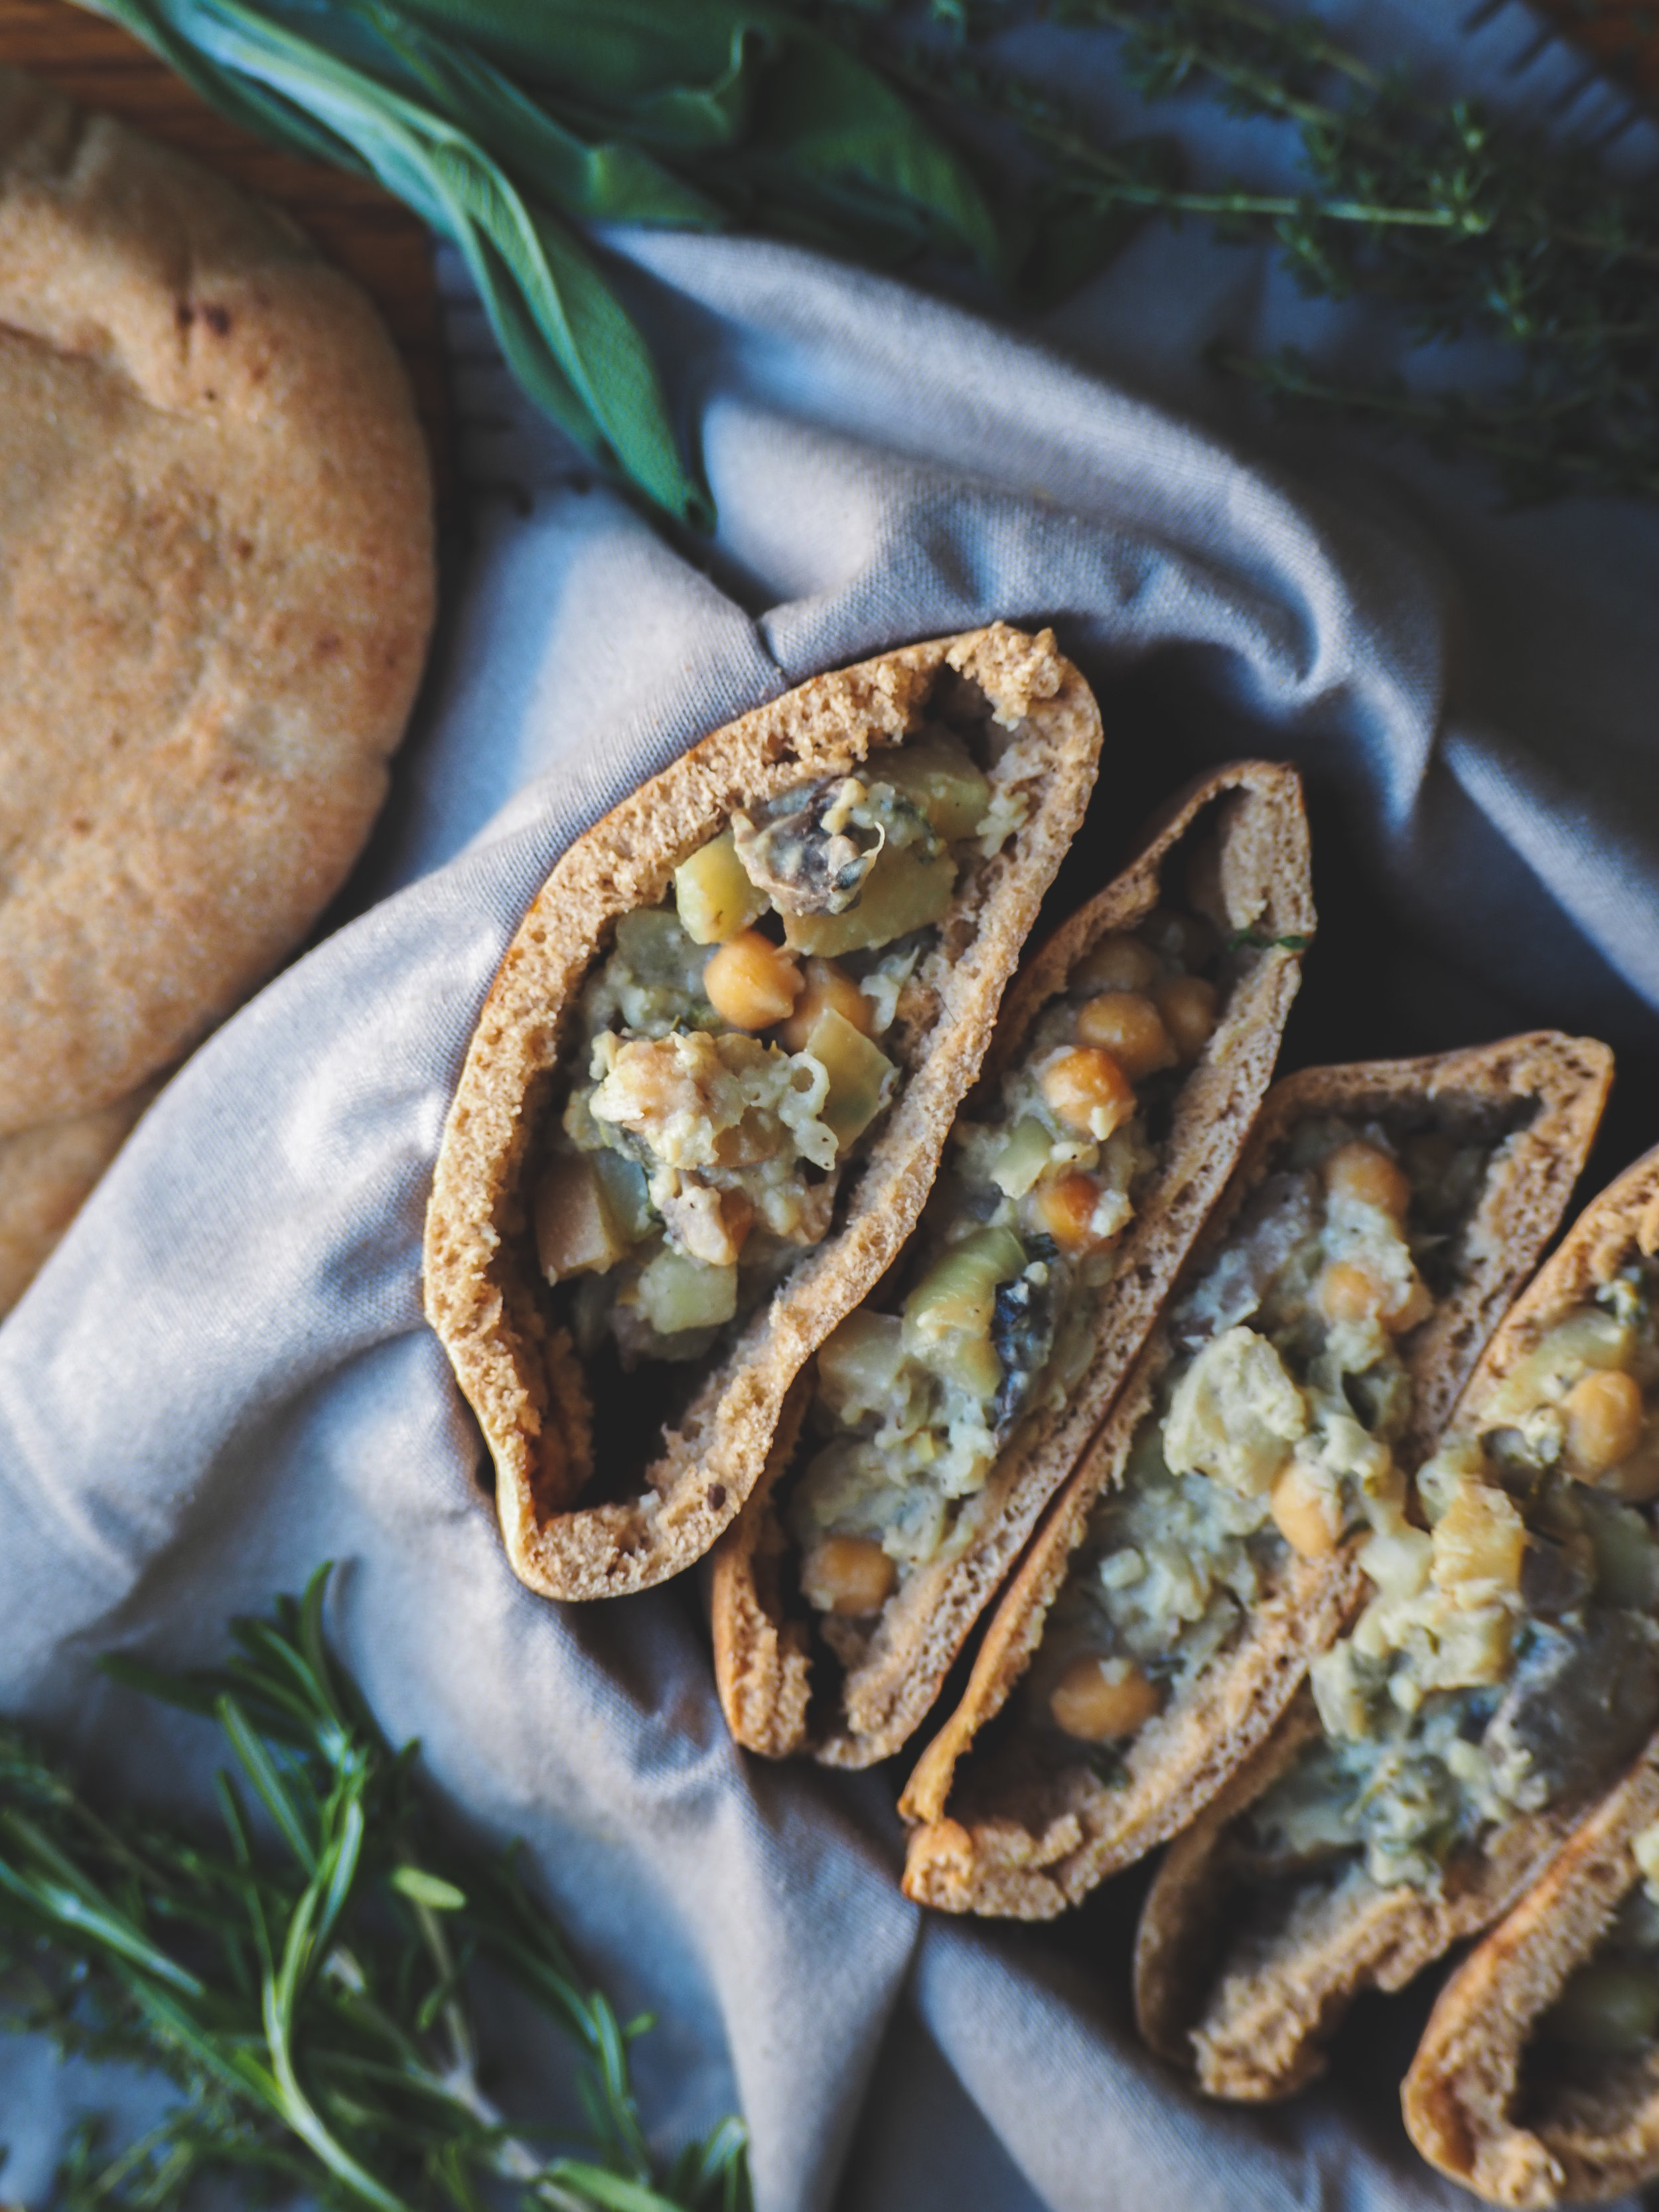 Cauliflower Stuffed Pita with Chickpeas and Fresh Herbs   Plant-Based Vegan, Oil-Free, Delicious, Whole Food Meal